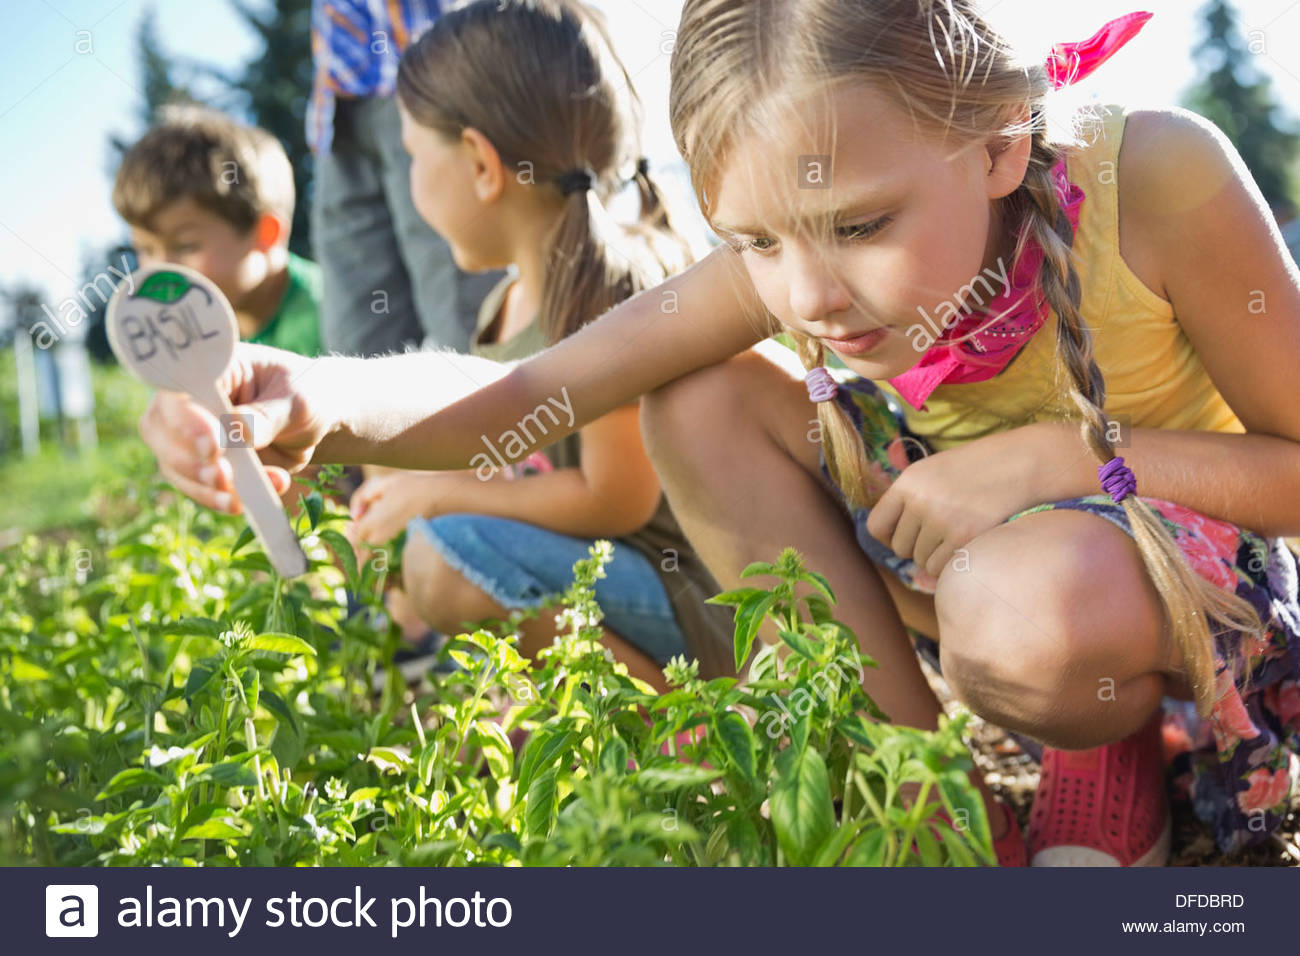 Girl placing basil sign in community garden - Stock Image